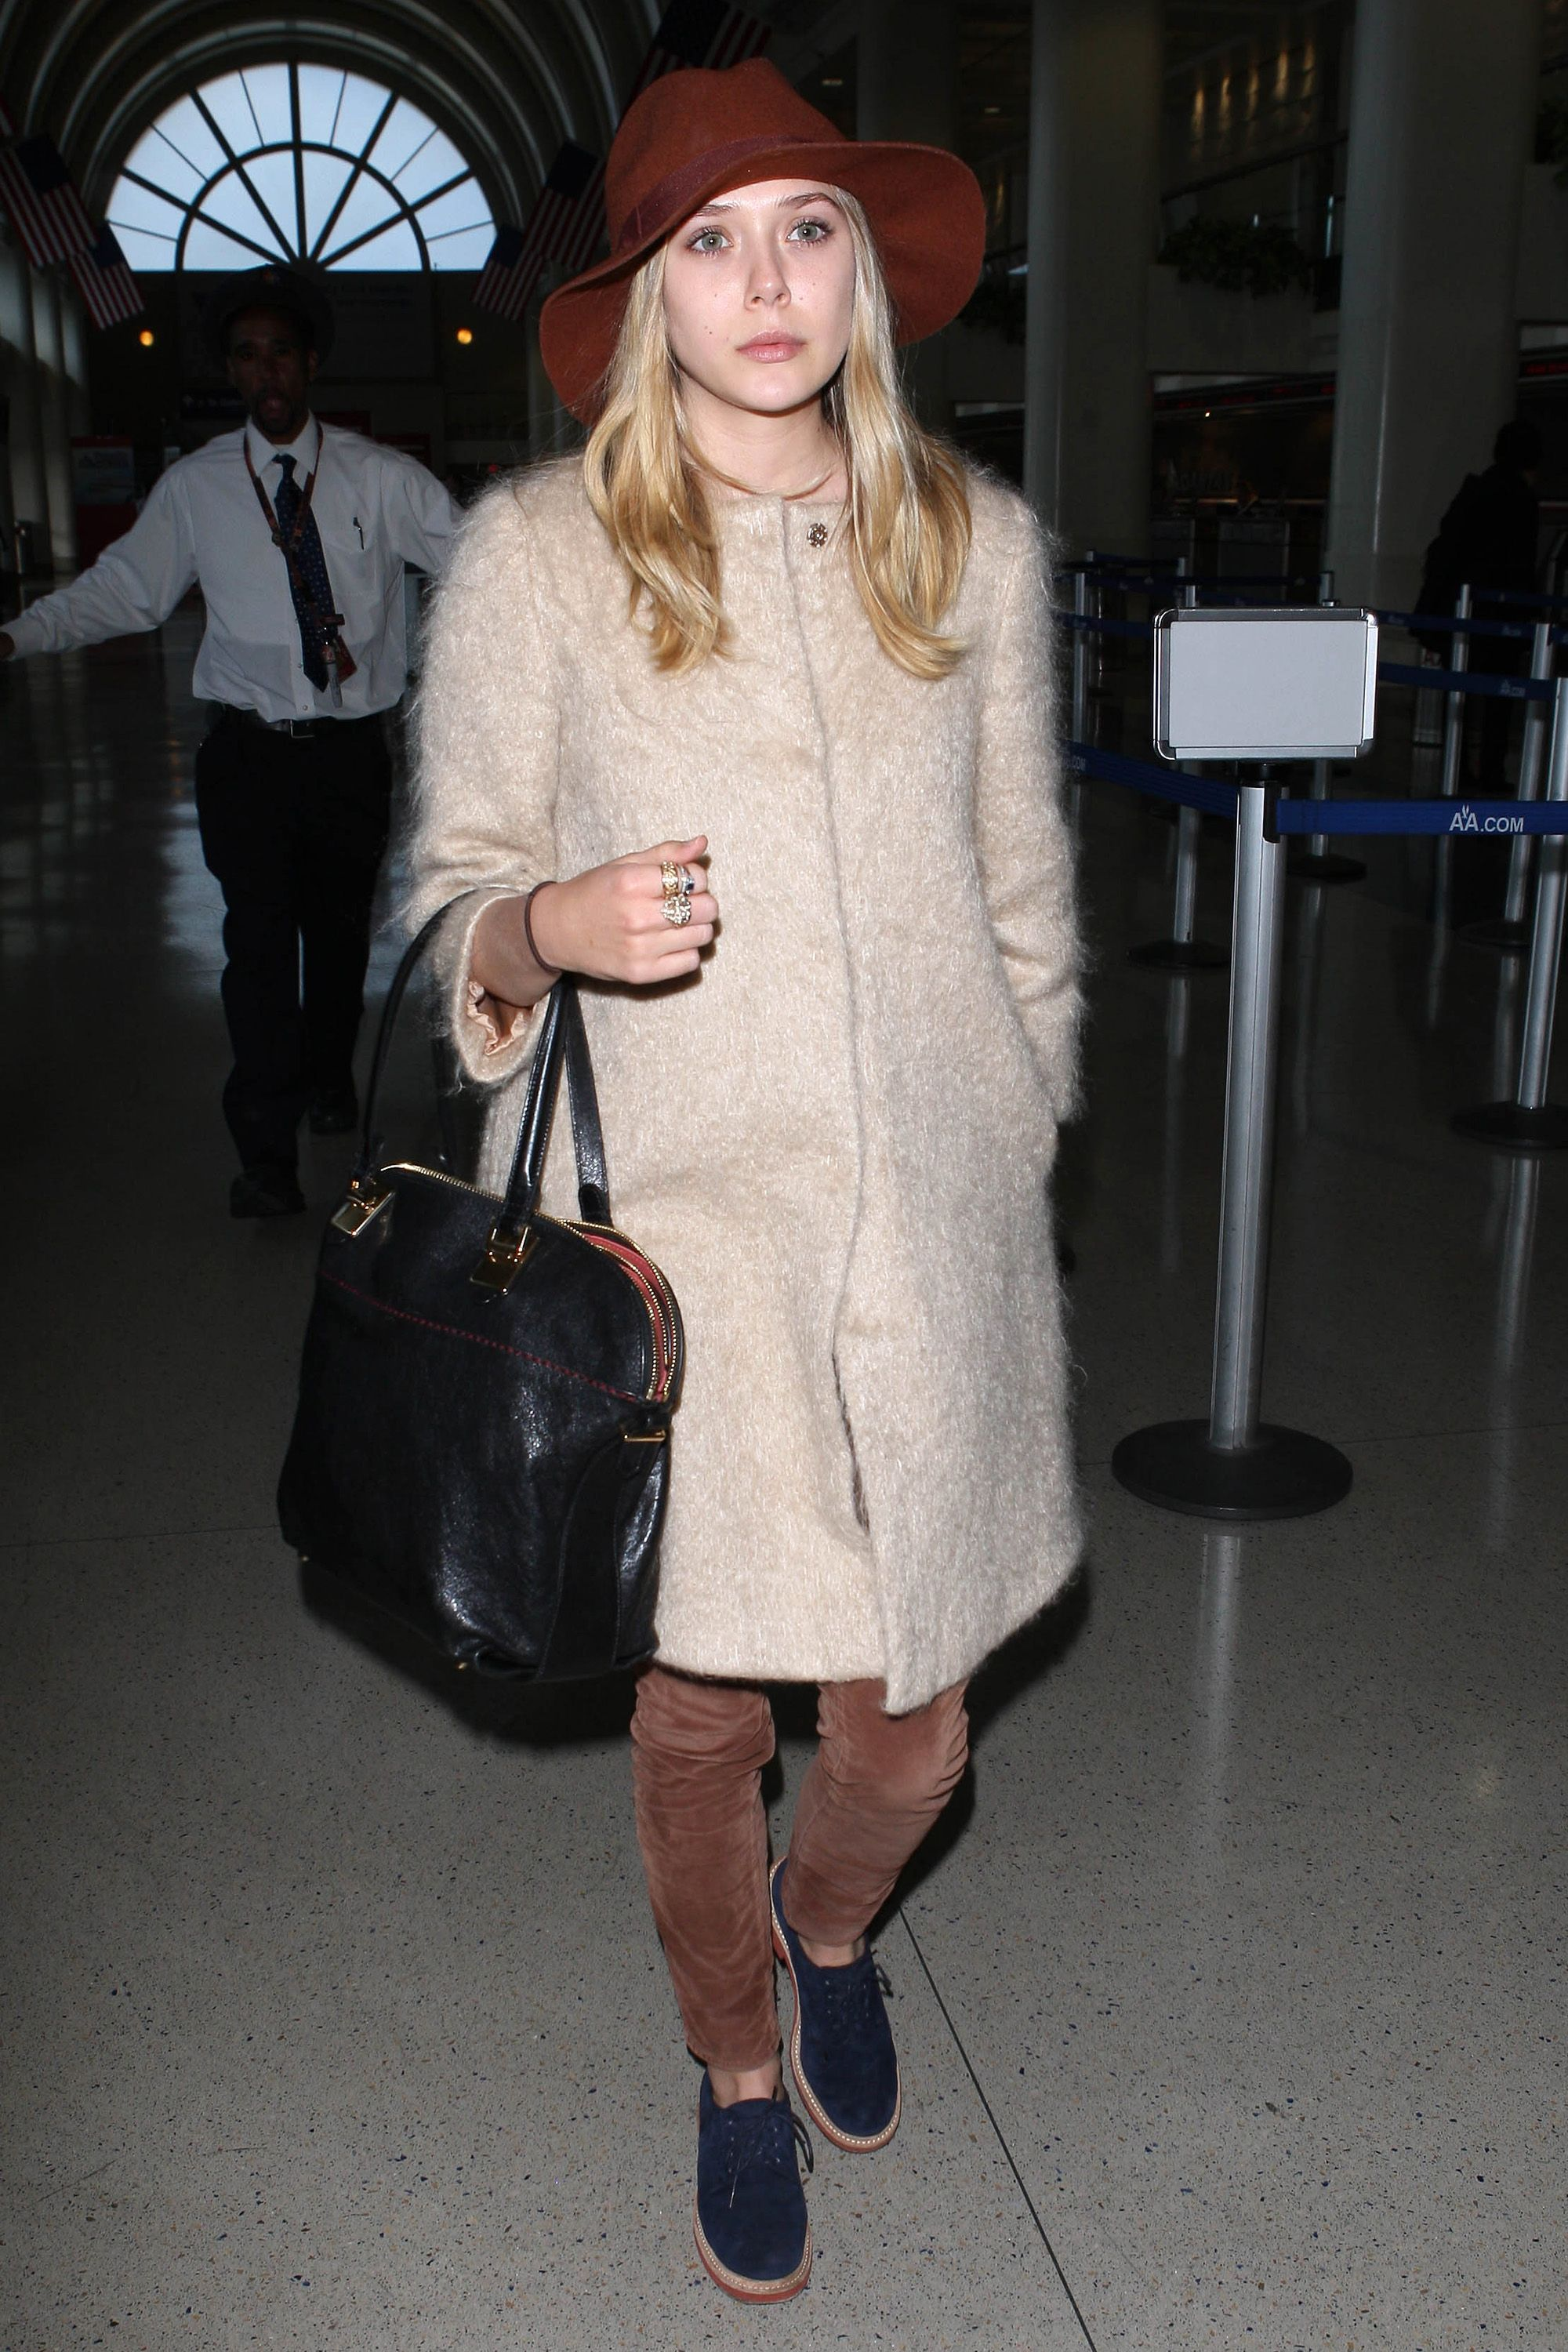 Elizabeth Olsen arriving at LAX coming from New York.&#xA&#x3B;&lt&#x3B;P&gt&#x3B;&#xA&#x3B;Pictured: Elizabeth Olsen&#xA&#x3B;&lt&#x3B;P&gt&#x3B;&#xA&#x3B;&lt&#x3B;B&gt&#x3B;Ref: SPL371796  150312  &lt&#x3B;/B&gt&#x3B;&lt&#x3B;BR/&gt&#x3B;&#xA&#x3B;Picture by: SWAP / Splash News&lt&#x3B;BR/&gt&#x3B;&#xA&#x3B;&lt&#x3B;/P&gt&#x3B;&lt&#x3B;P&gt&#x3B;&#xA&#x3B;&lt&#x3B;B&gt&#x3B;Splash News and Pictures&lt&#x3B;/B&gt&#x3B;&lt&#x3B;BR/&gt&#x3B;&#xA&#x3B;Los Angeles:&#x9&#x3B;310-821-2666&lt&#x3B;BR/&gt&#x3B;&#xA&#x3B;New York:&#x9&#x3B;212-619-2666&lt&#x3B;BR/&gt&#x3B;&#xA&#x3B;London:&#x9&#x3B;870-934-2666&lt&#x3B;BR/&gt&#x3B;&#xA&#x3B;photodesk@splashnews.com&lt&#x3B;BR/&gt&#x3B;&#xA&#x3B;&lt&#x3B;/P&gt&#x3B;